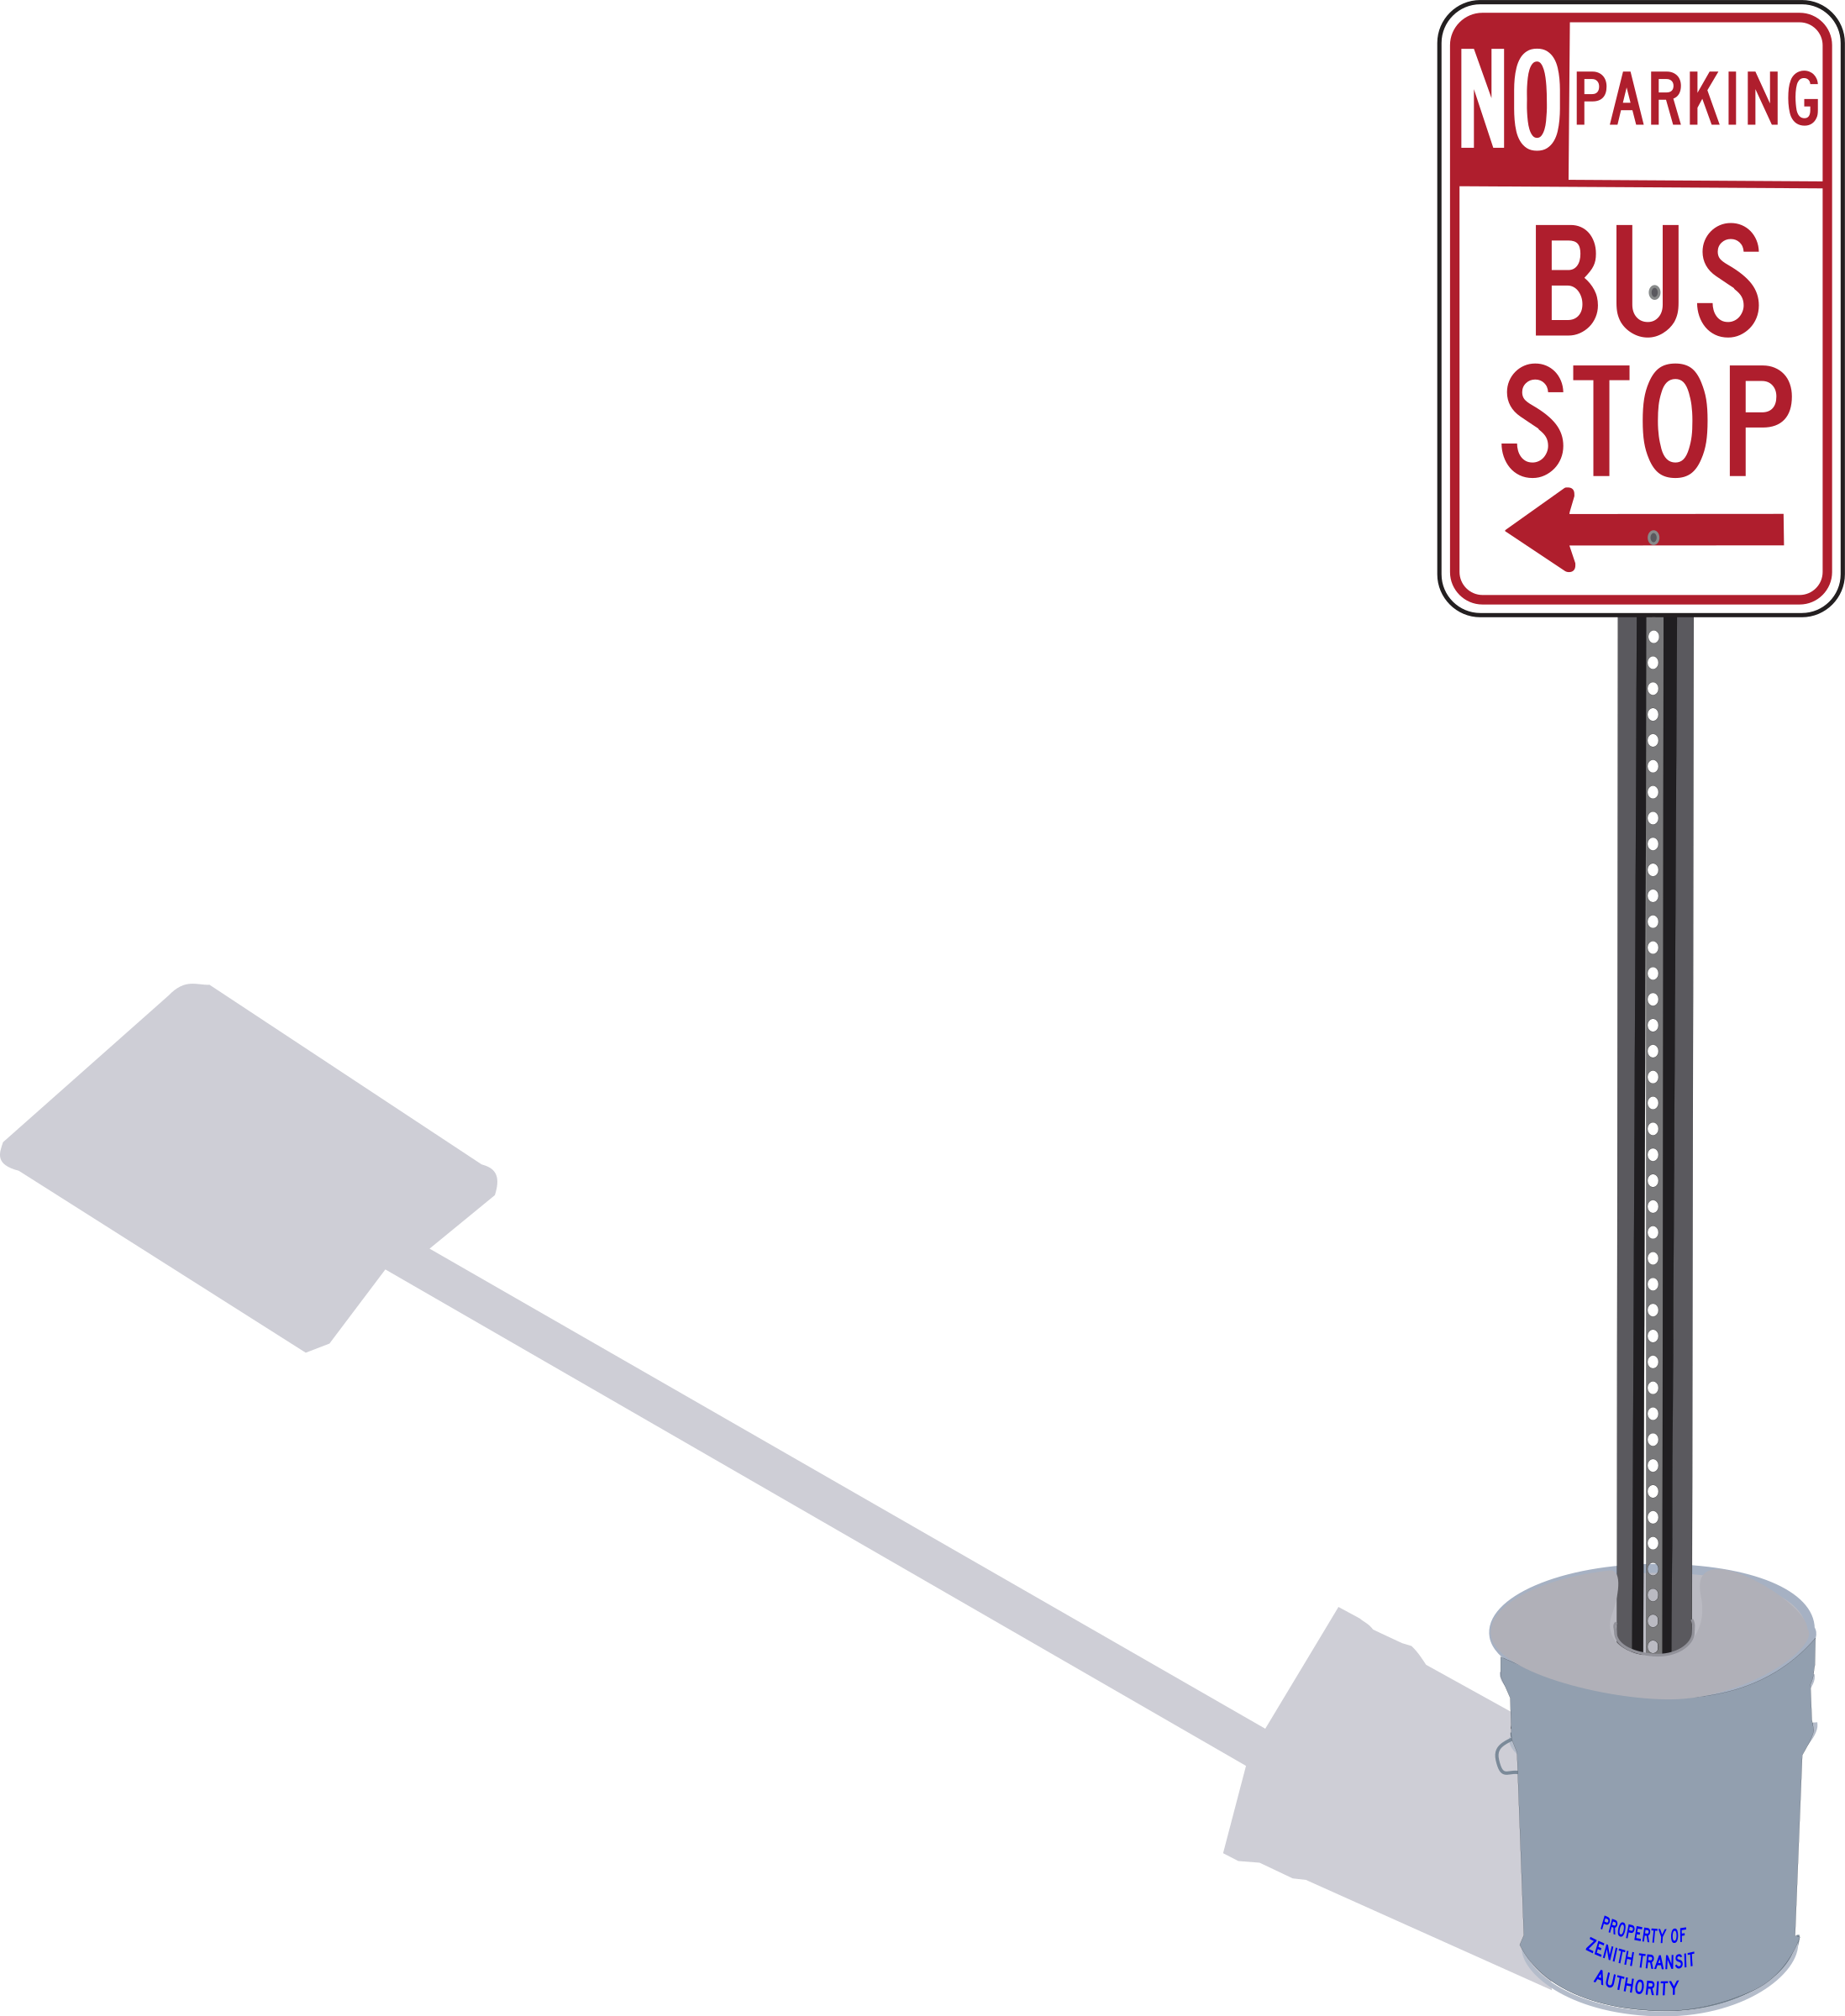 Bus Stop sign in cement pail with shadow by Rfc1394